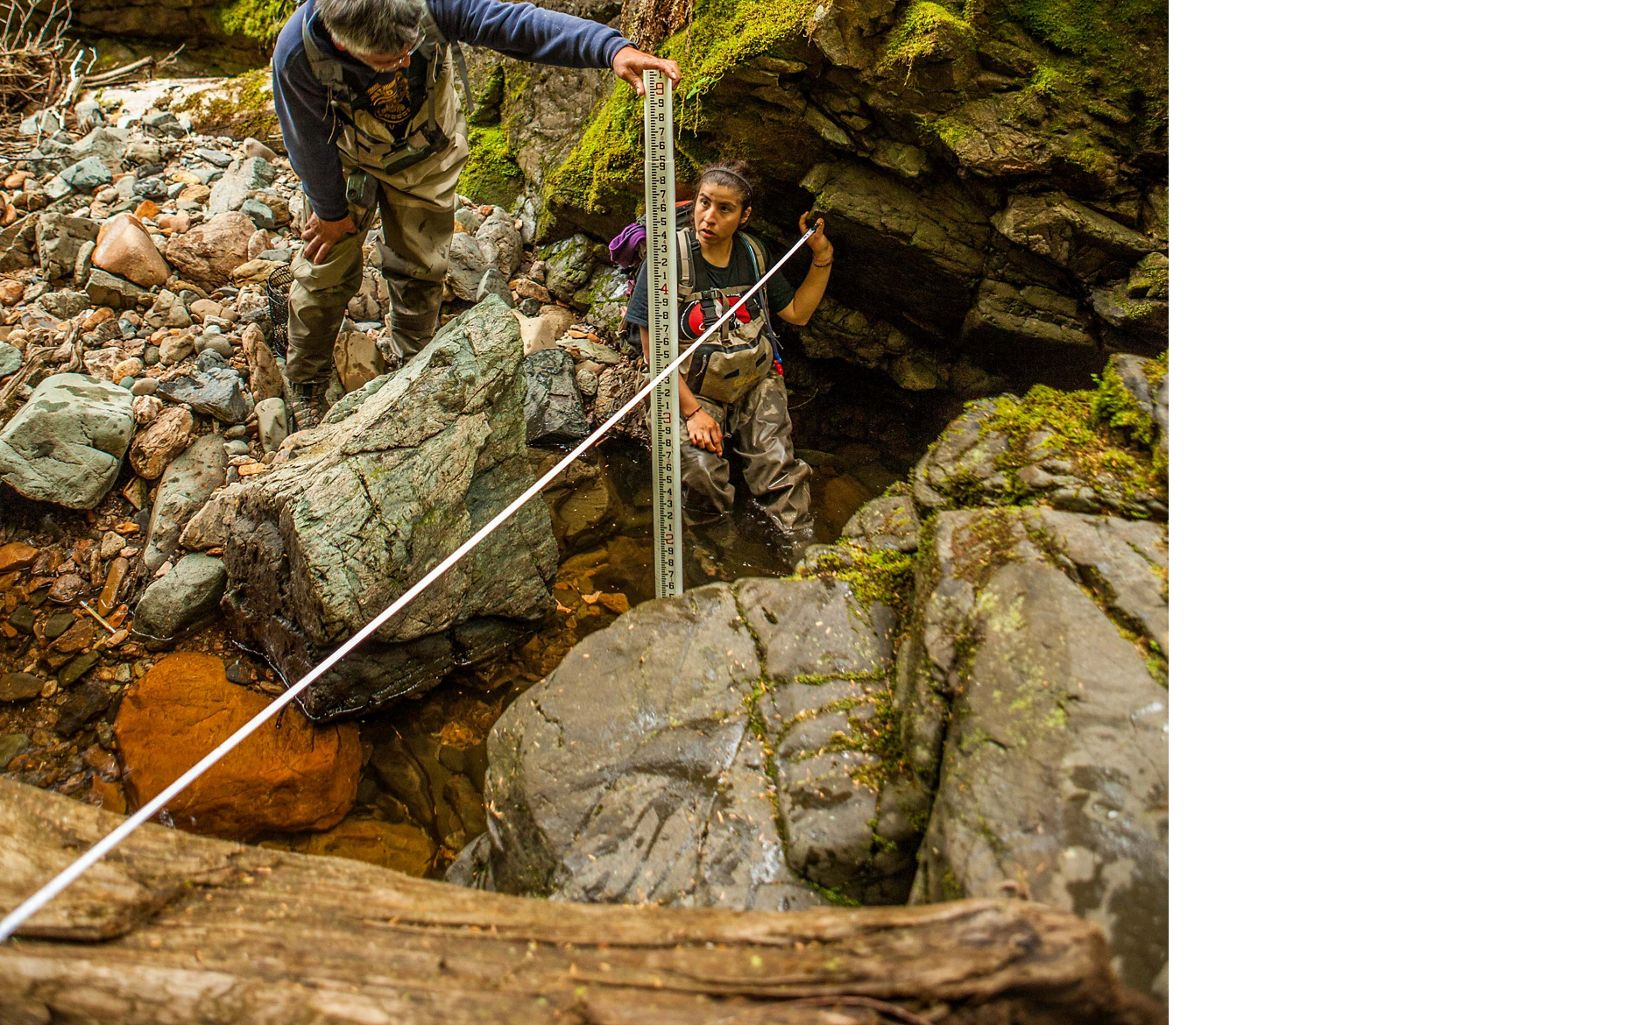 Members of the Haida tribe perform fish surveys on streams at Keat's Inlet on Prince of Wales Island, Alaska.